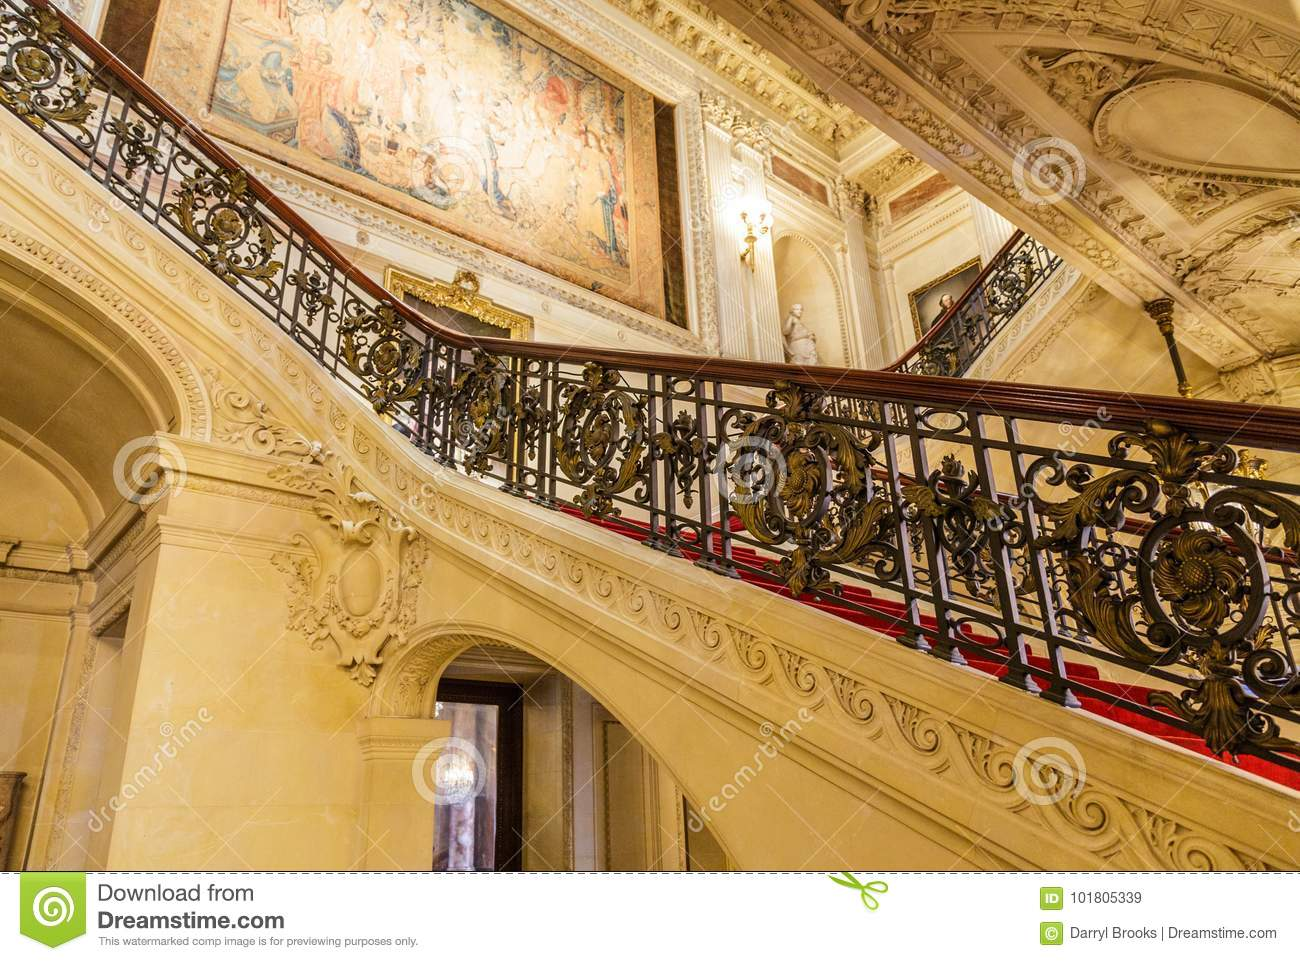 Superieur Download Ornate Staircase Banister In Rhode Island Mansion Editorial Stock  Image   Image Of Banister,